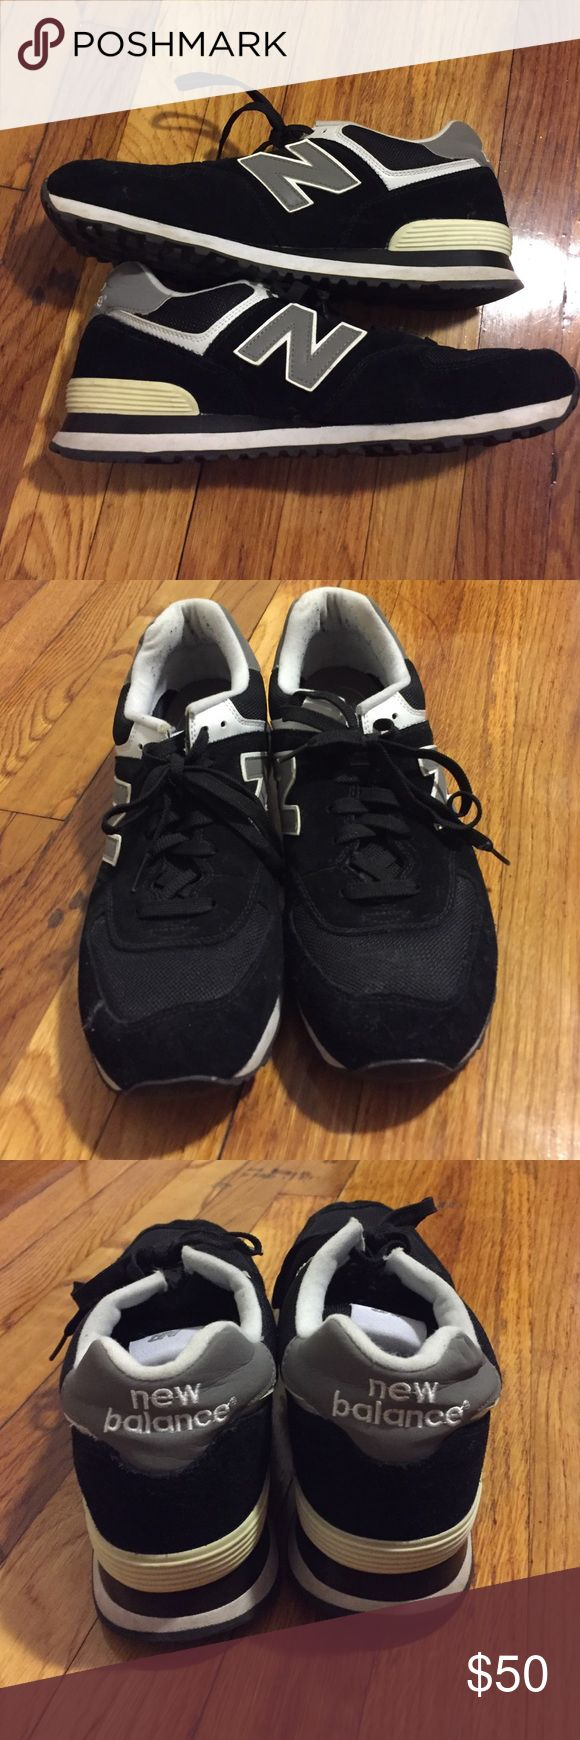 Men's New Balance 574 Classic Shoes Men's New Balance 574 Classic Shoes size 12. Excellent used condition. Only worn a few times just the outside is a little dirty but can be easily cleaned. Does not come with box. No trades please! New Balance Shoes